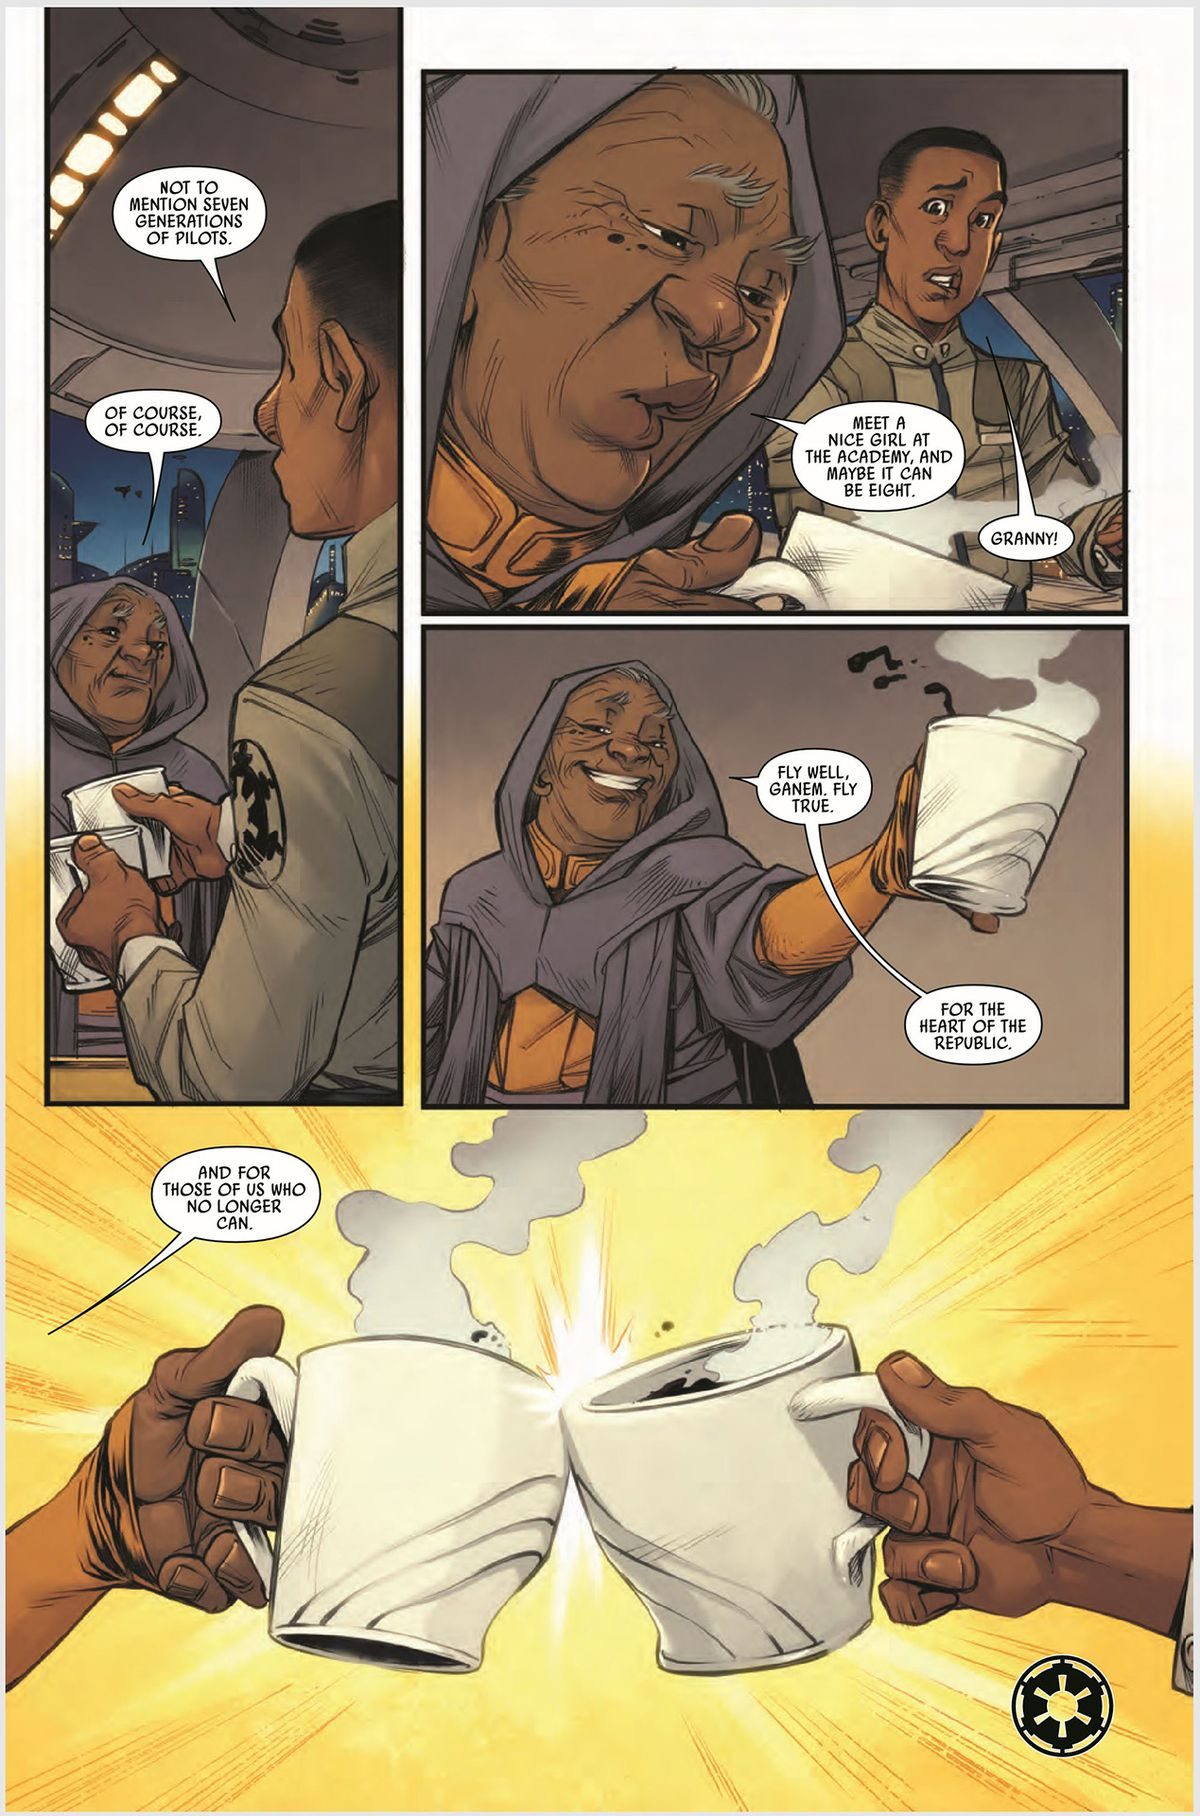 """A TIE pilot talking with his grandmother in Marvel's TIE Fighter #4. """"Fly well, Ganem. Fly true,"""" she says. """"For the heart of the republic."""" Then offers him a toast. He ignores her confusion. """"And for those of use who no longer can,"""" she adds."""